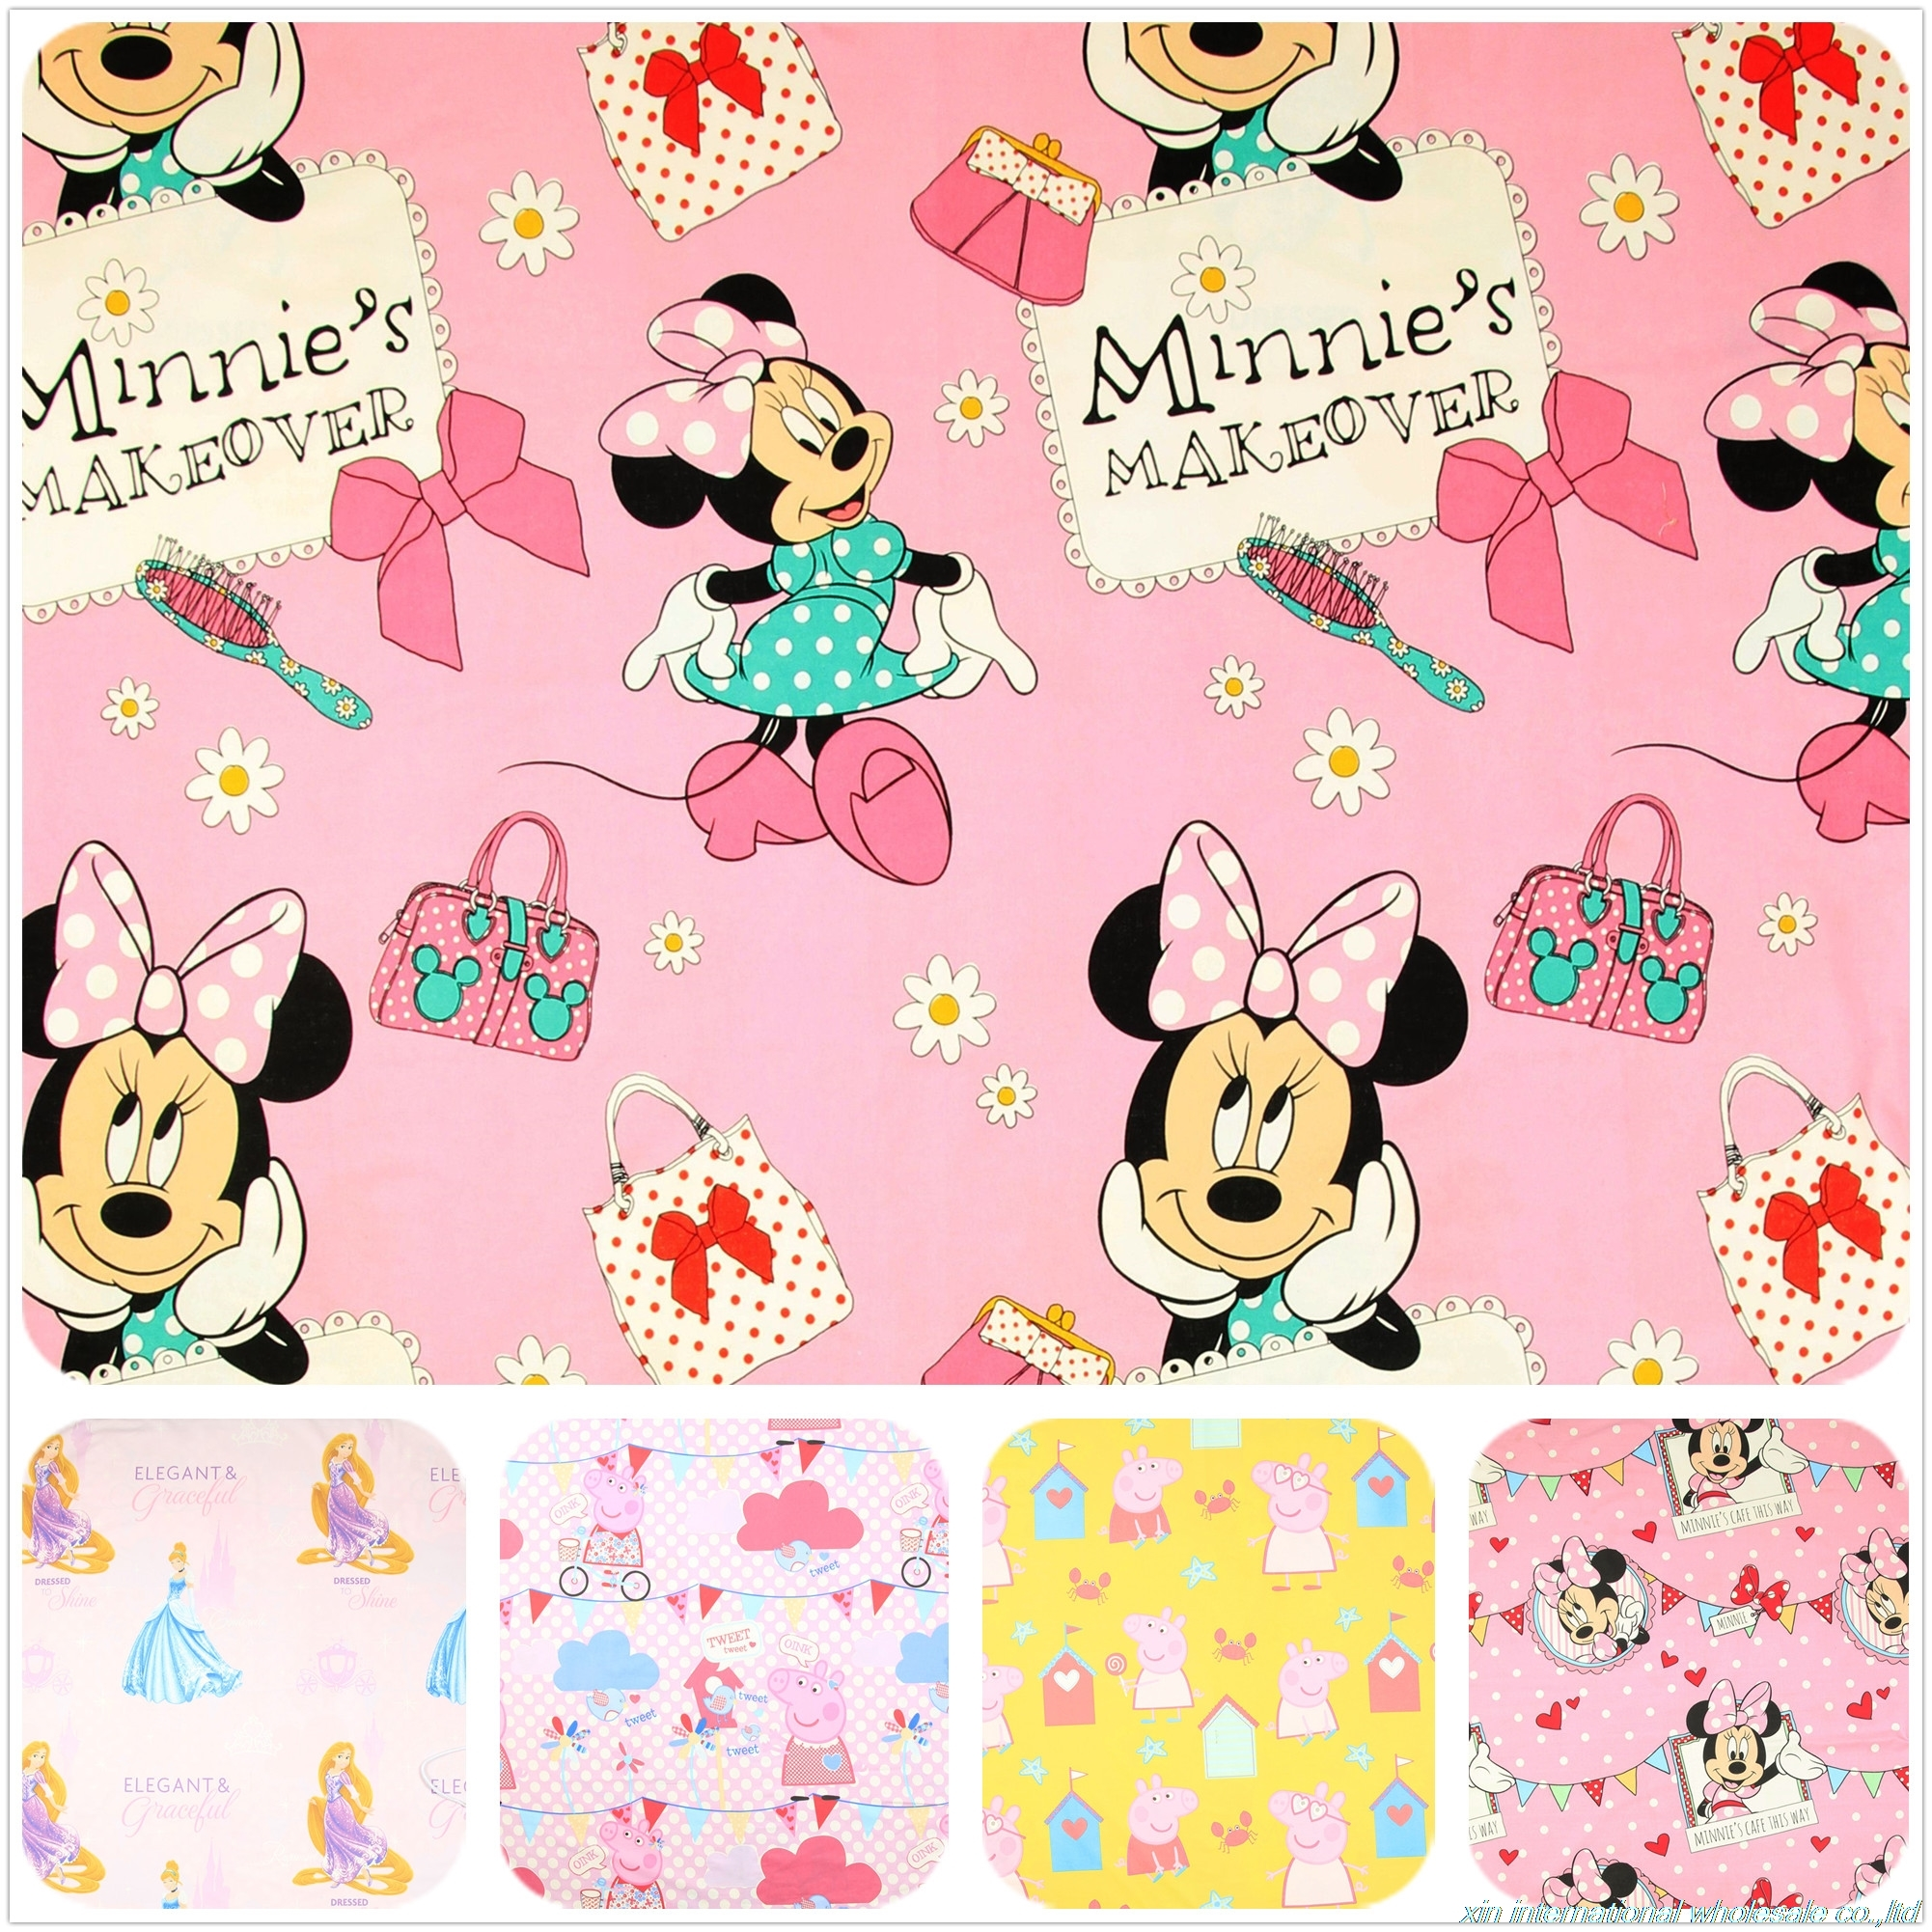 tabby cartoon fabric Pulp dyed cotton african fabric Minnie piglet printed with ice snow bazin riche getzner Handmade DIY telas